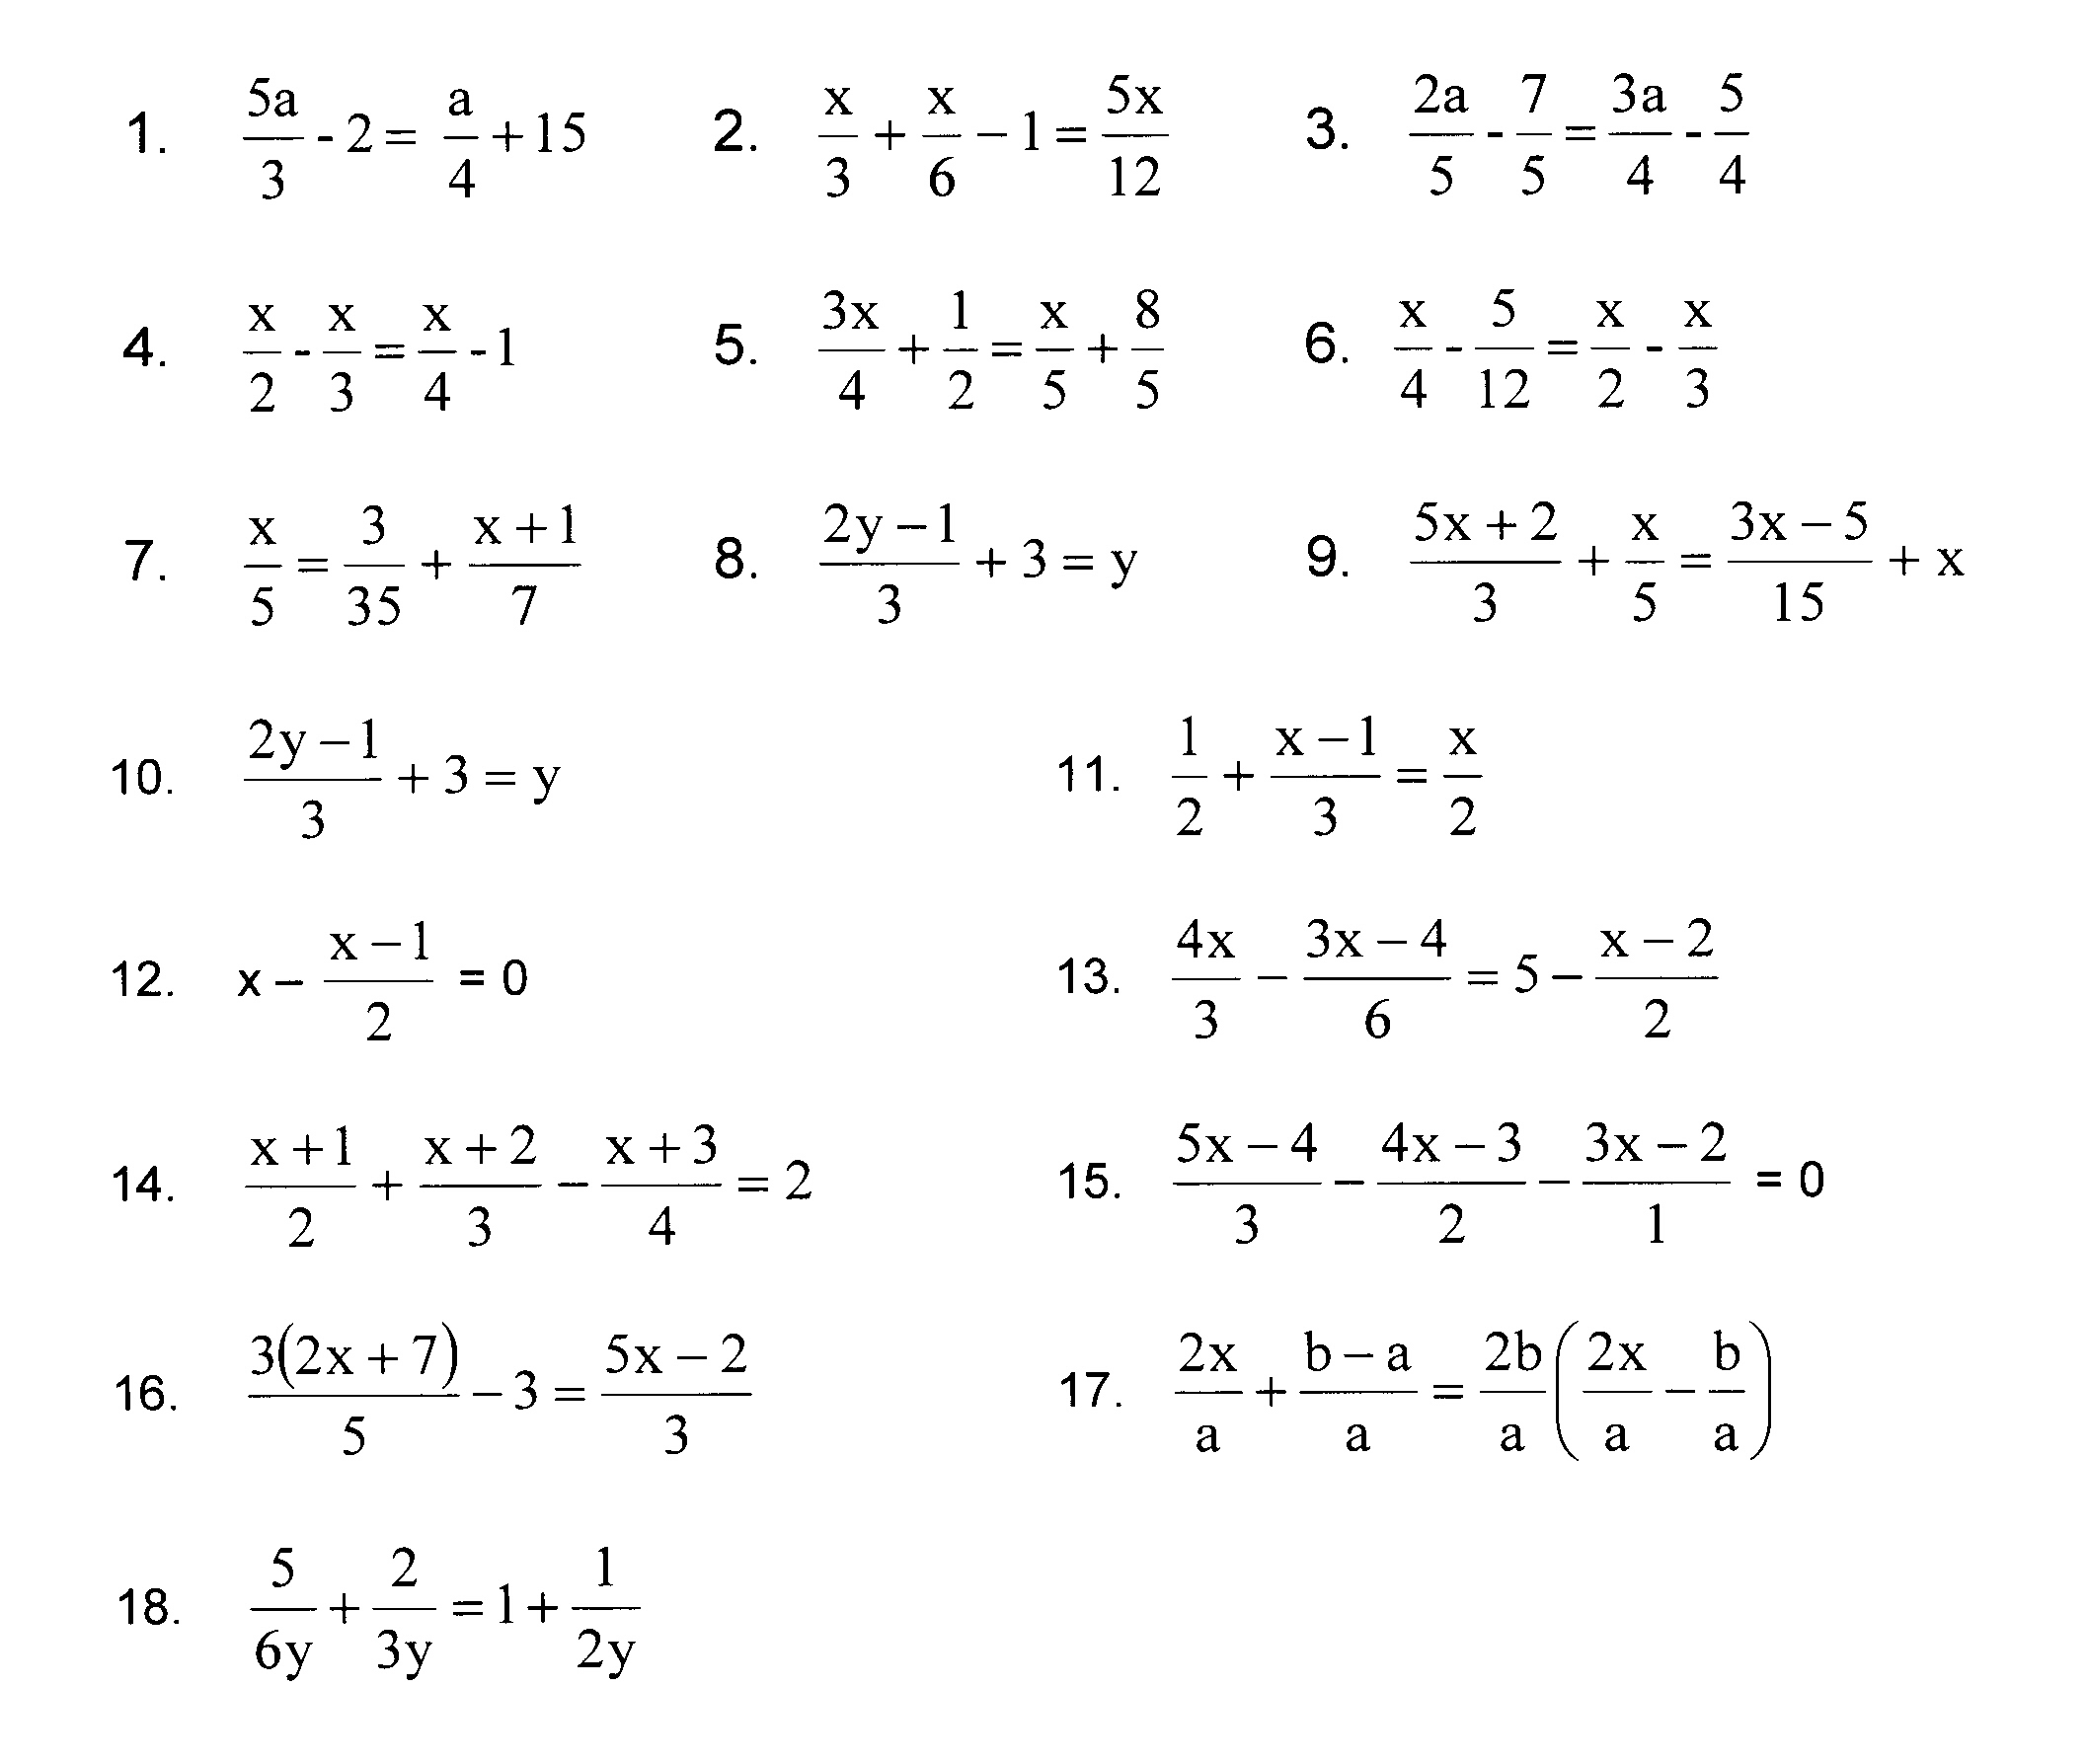 Worksheets Equations With Fractions Worksheet solve equations with fractions worksheet free worksheets library conflict resolution for students abitlikethis